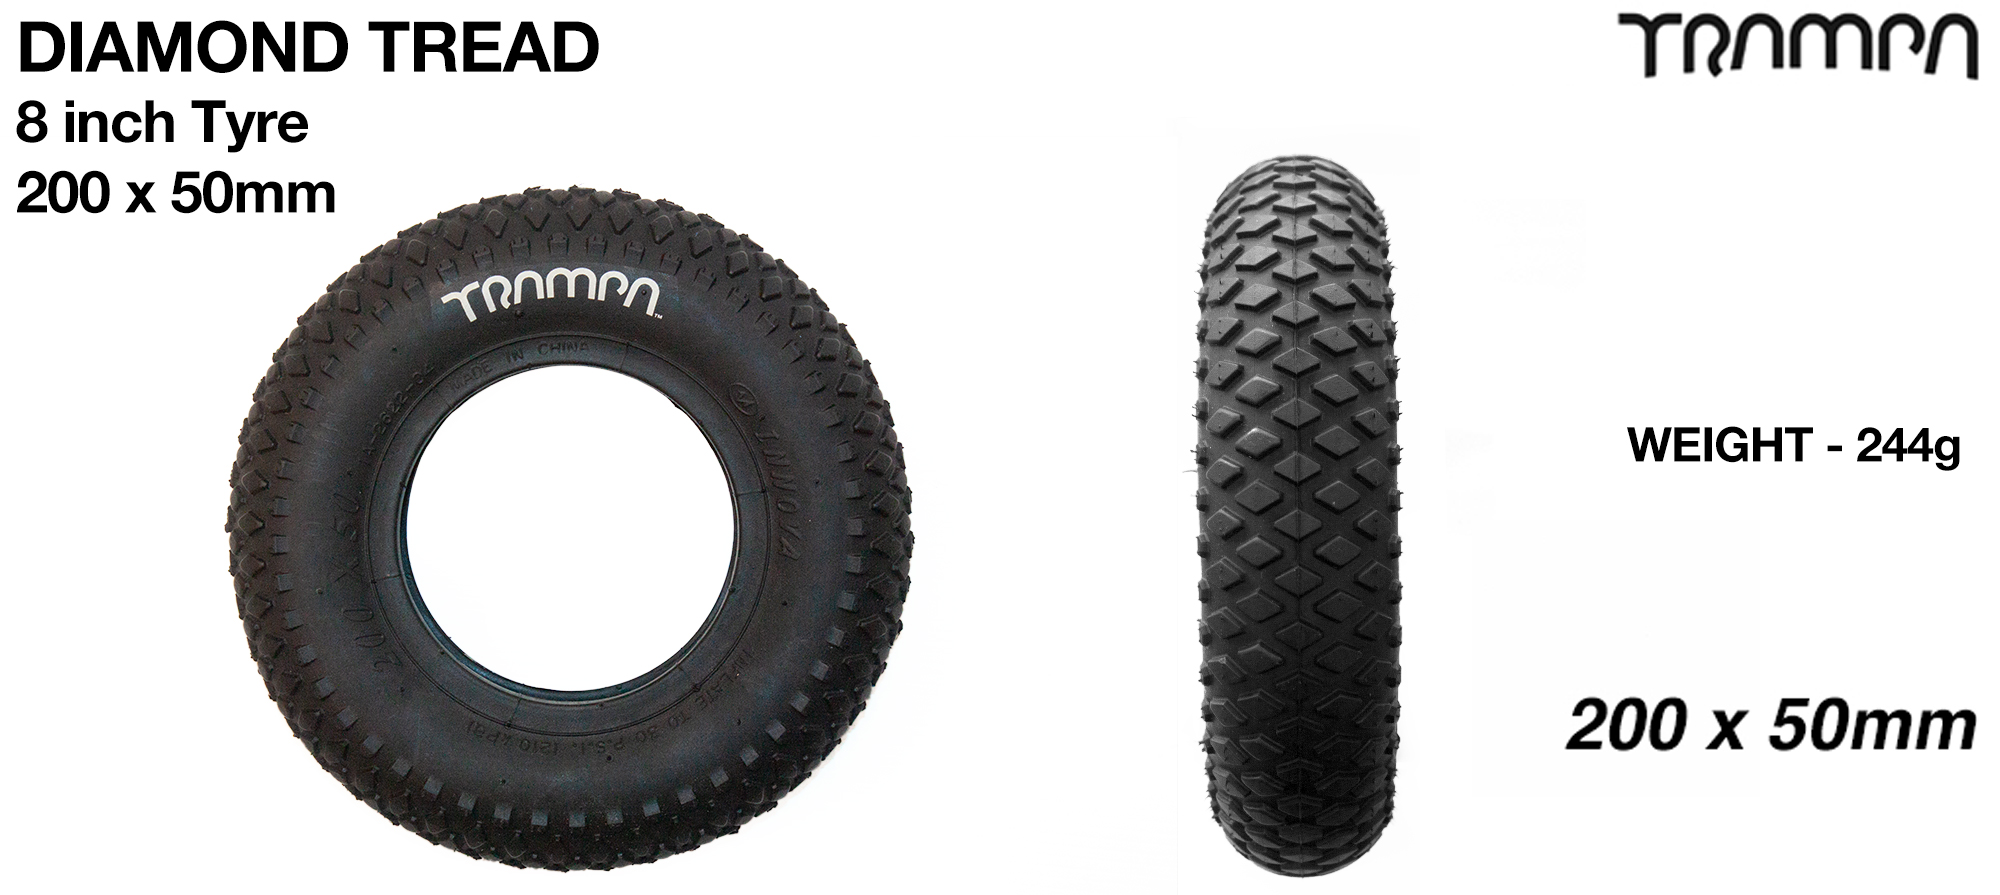 8 Inch Diamond Tread Tyre